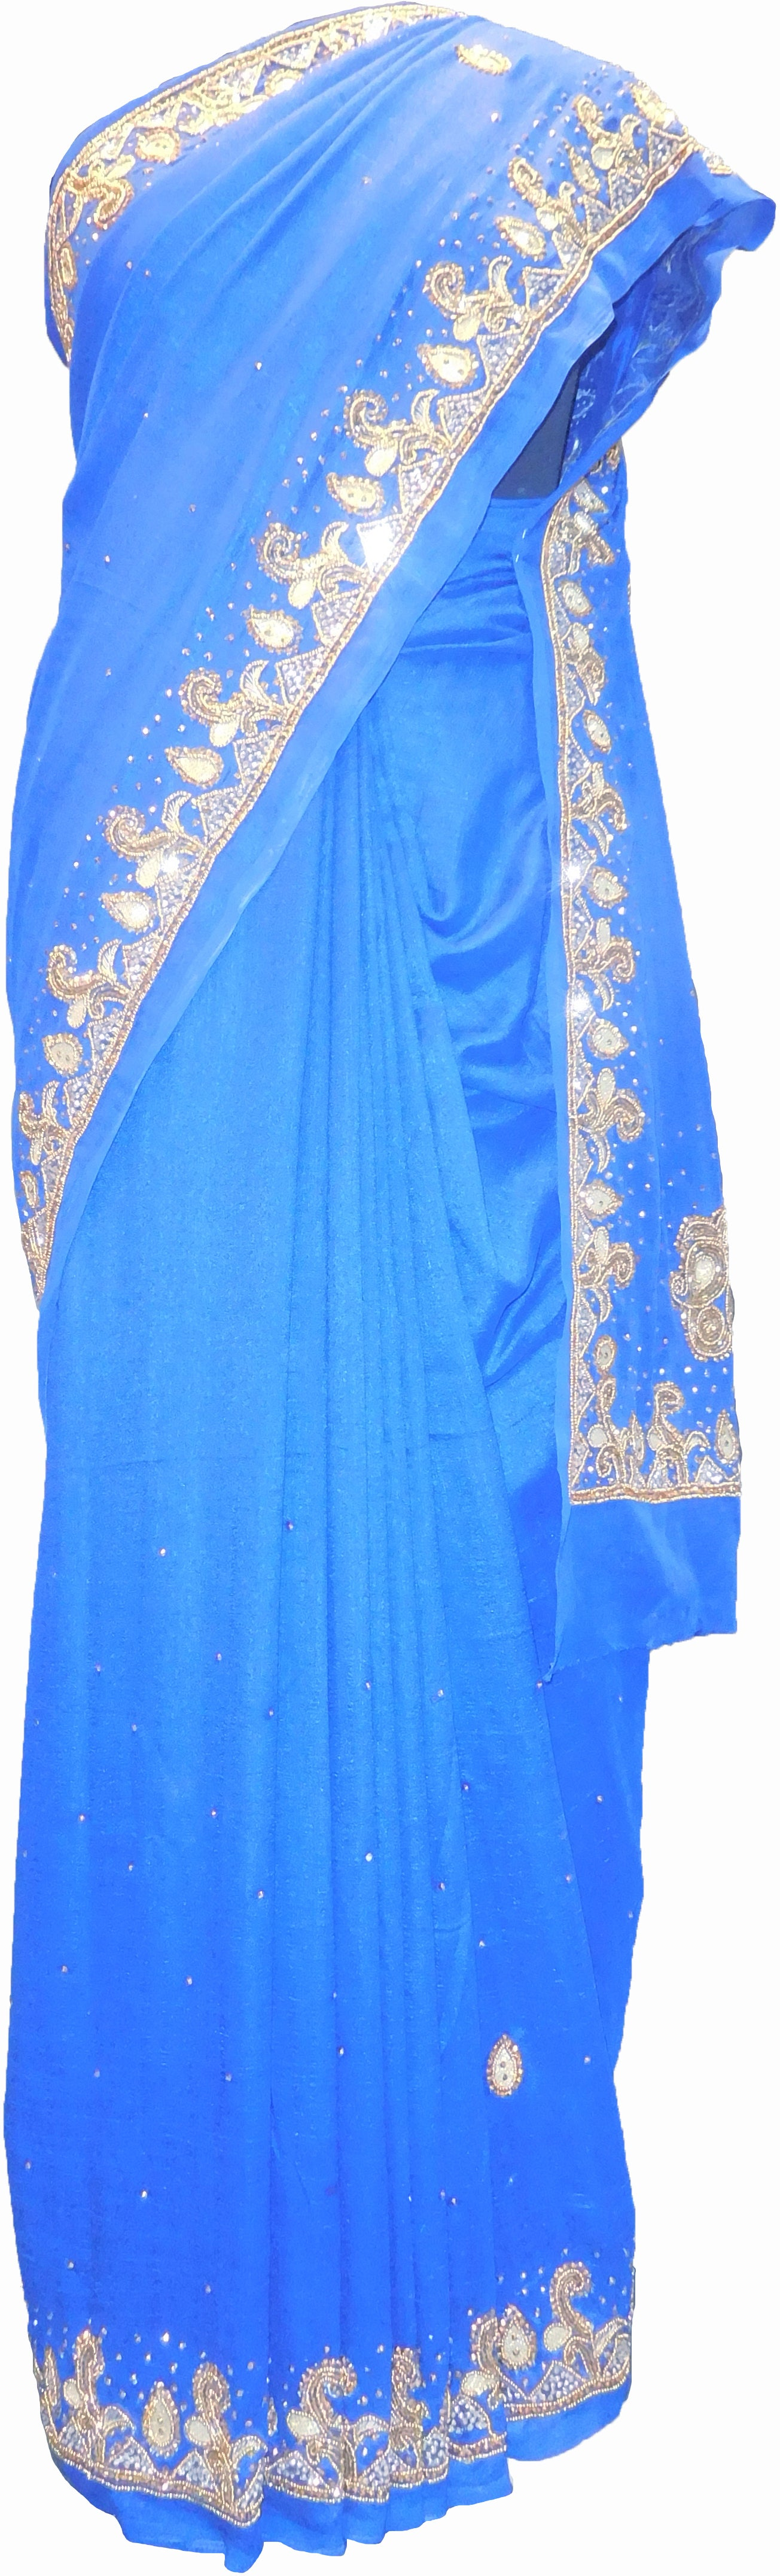 SMSAREE Blue Designer Wedding Partywear Silk (Vichitra) Zari Cutdana Thread Beads & Stone Hand Embroidery Work Bridal Saree Sari With Blouse Piece F189